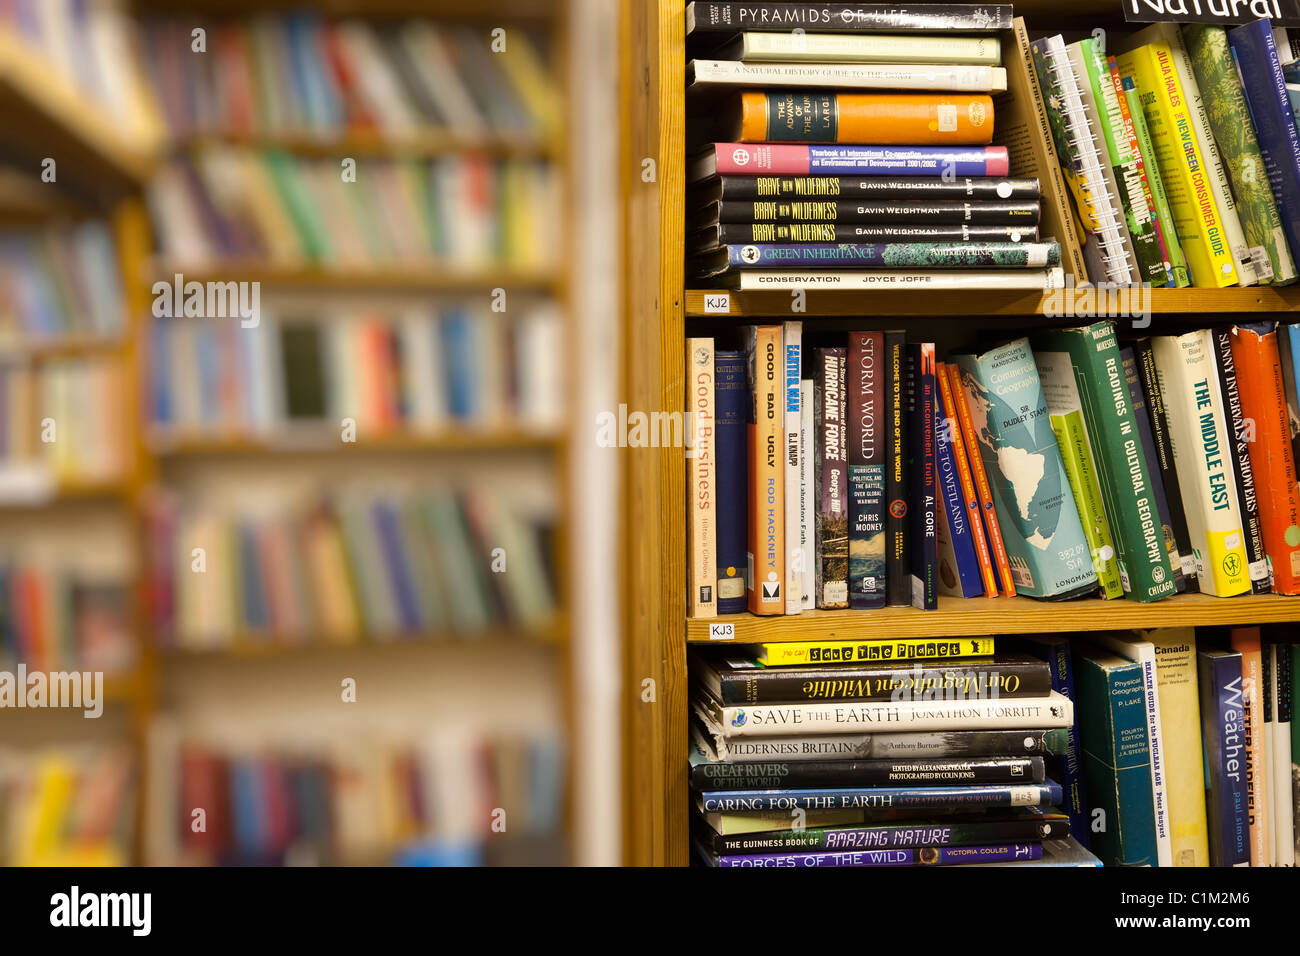 Hardback books on shelves in second hand bookshop Hay on Wye Wales UK - Stock Image